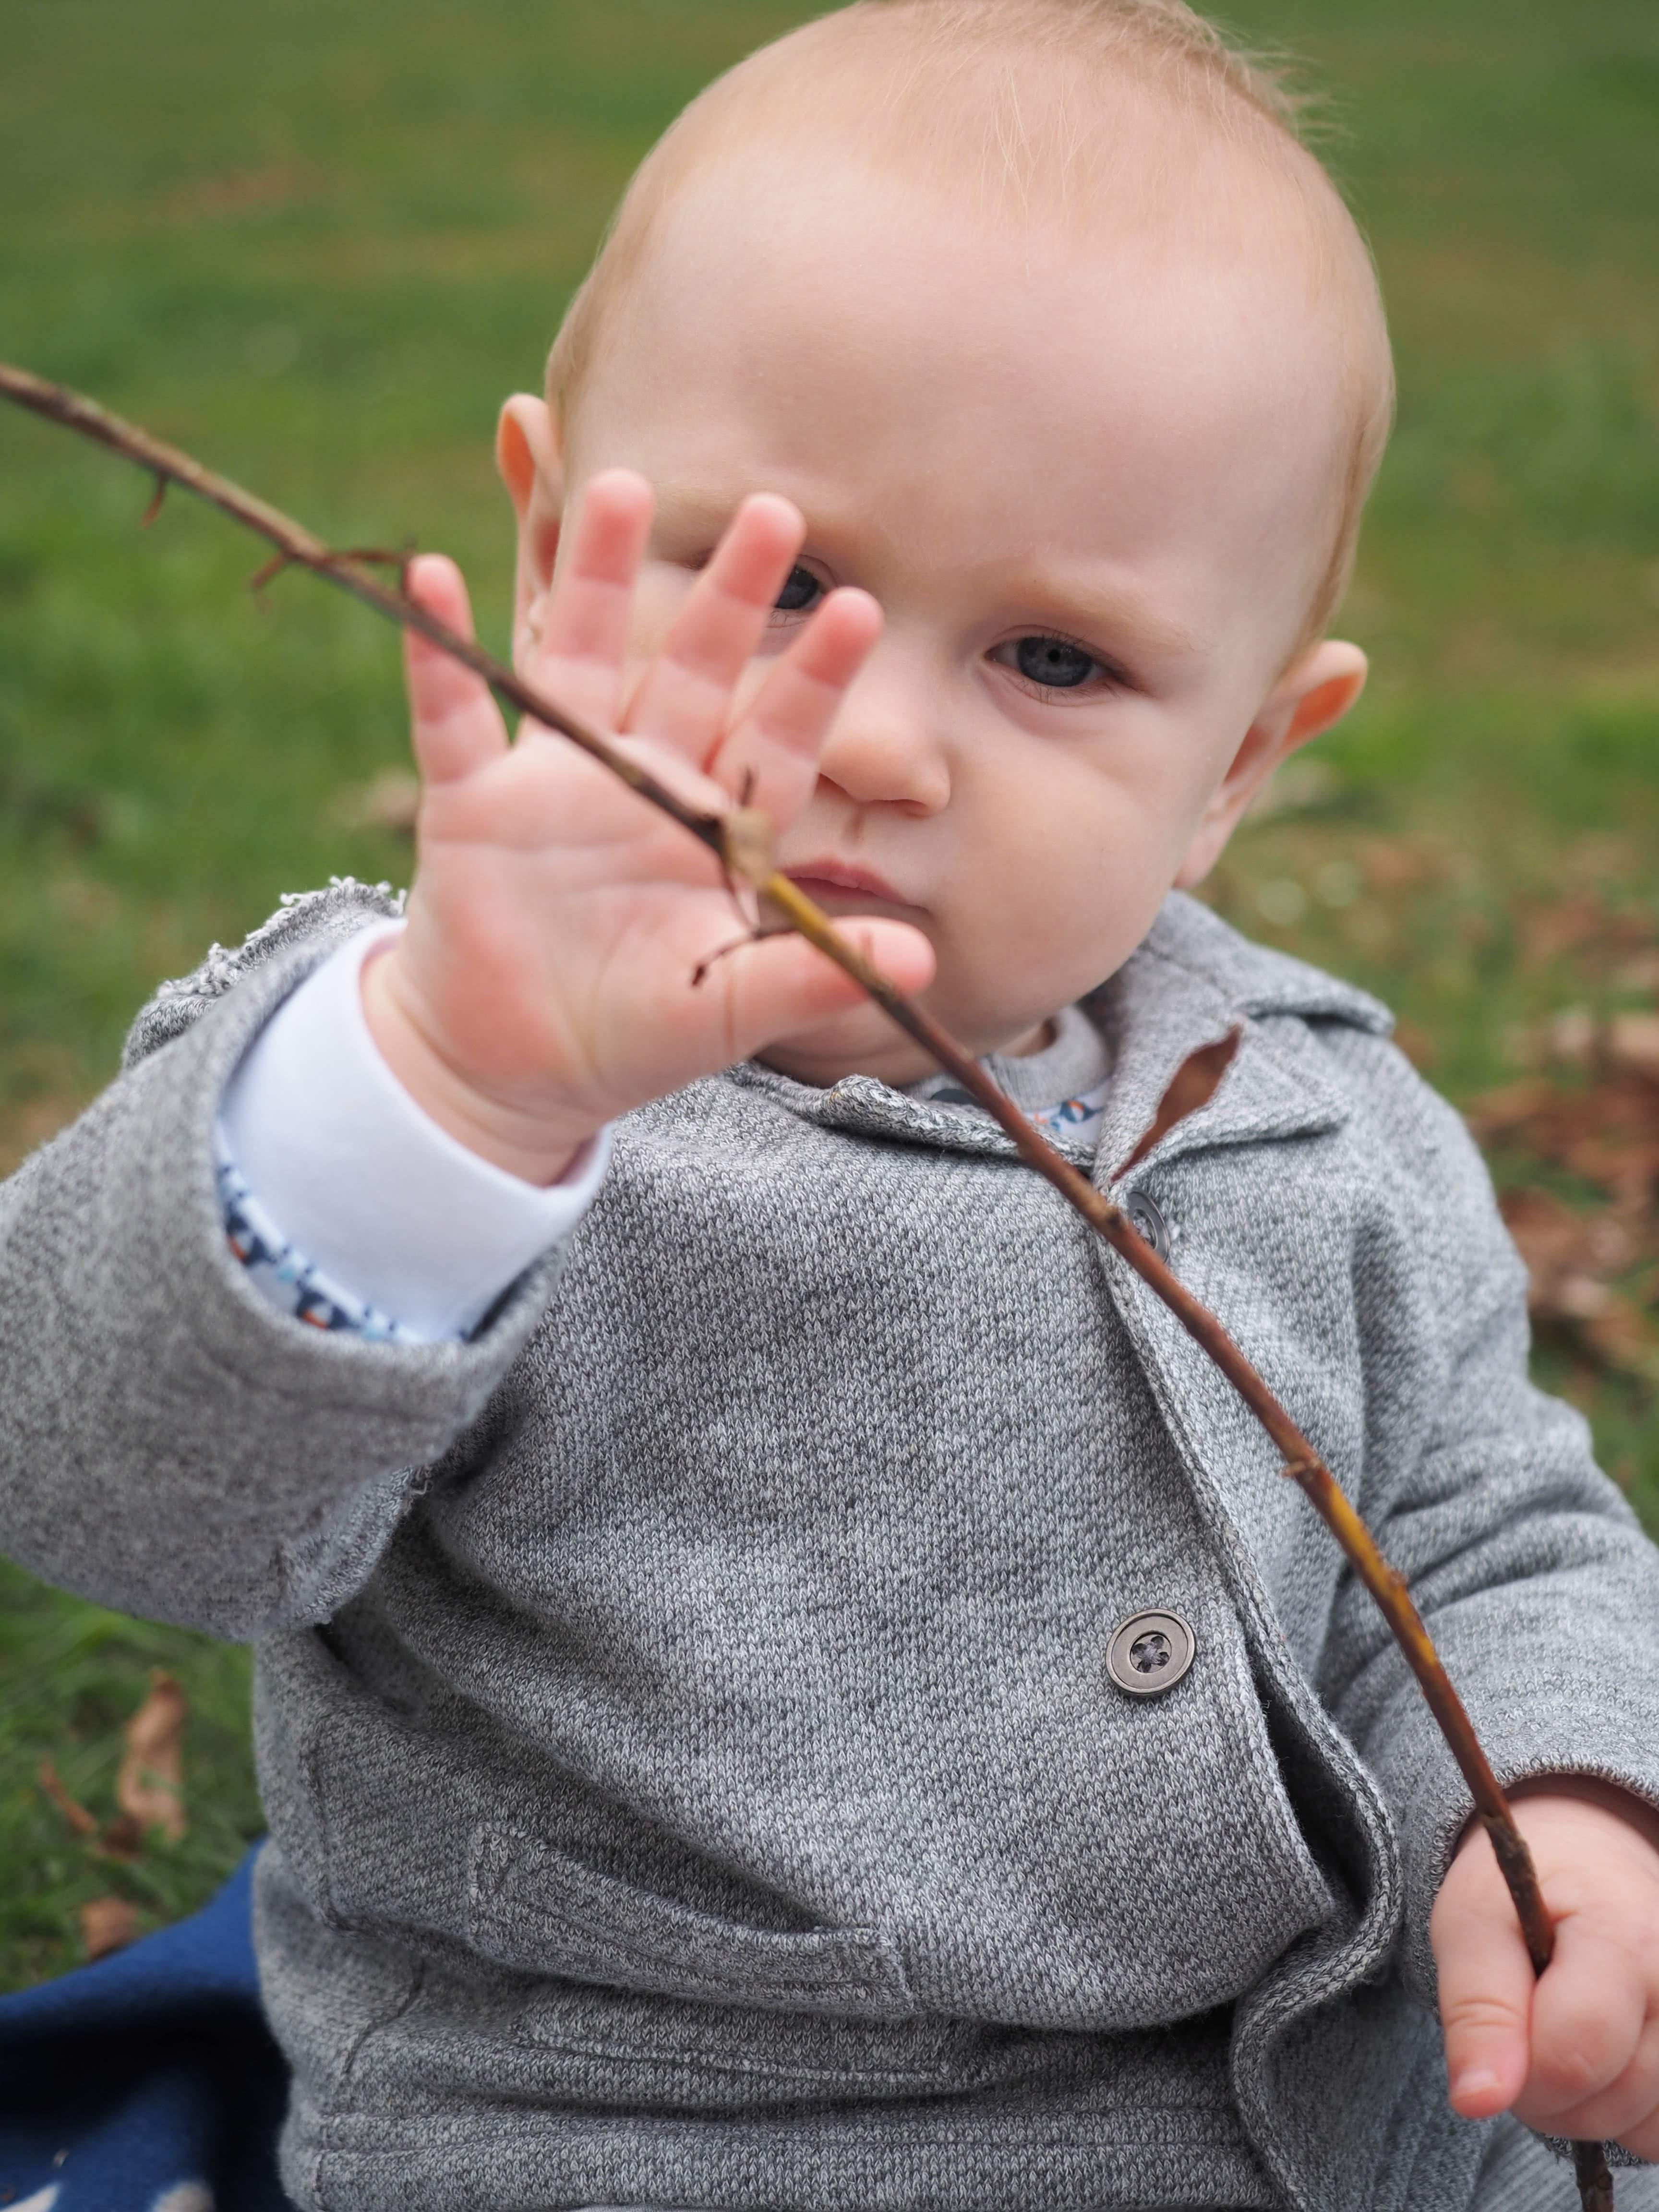 Nature Education At Happy Kids Budapest: Why Do We Let Children Play With Sticks